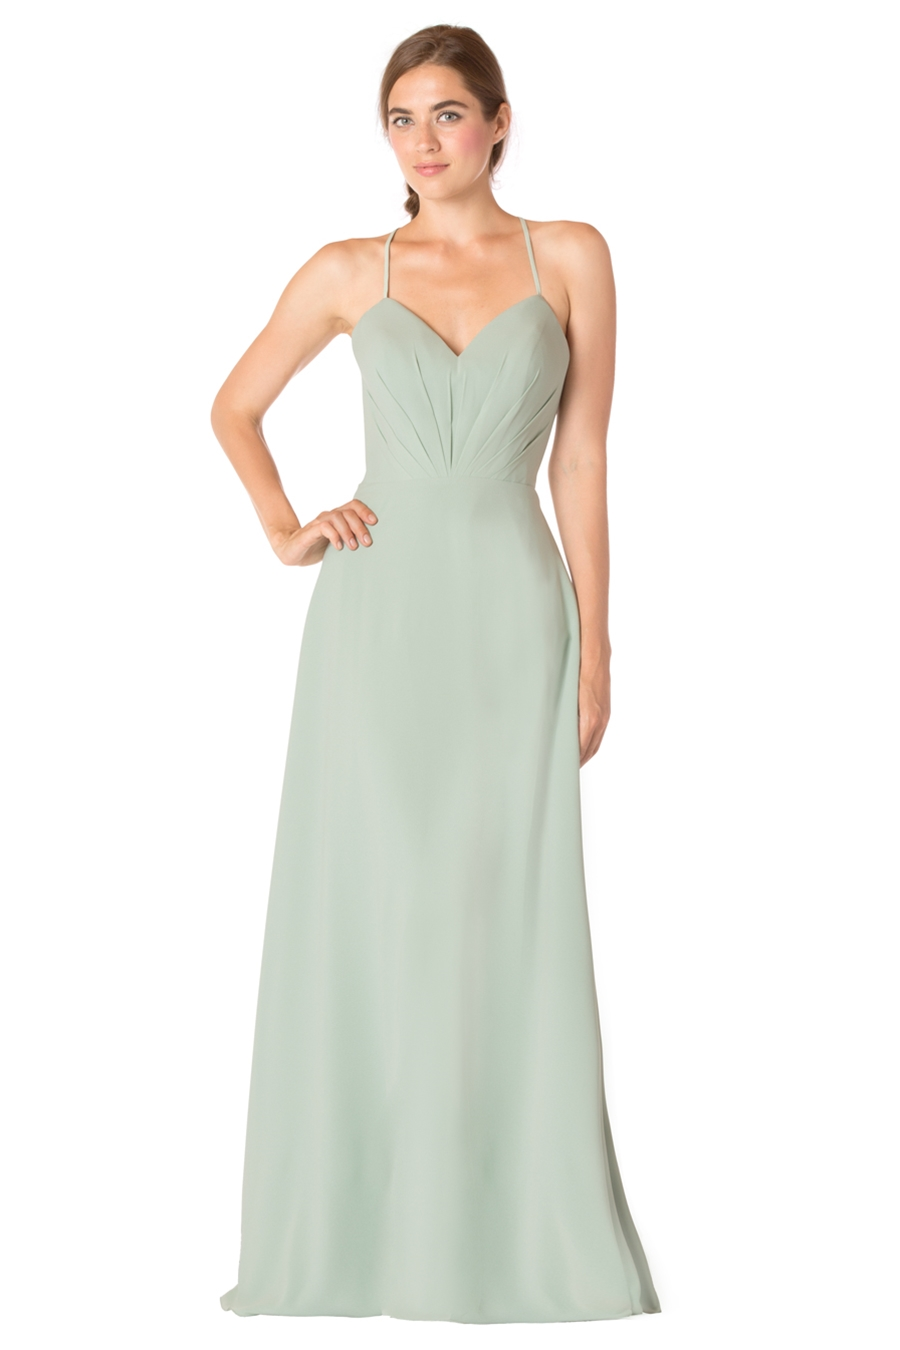 Bari jay bridesmaid dress style 1726 house of brides select color ombrellifo Images